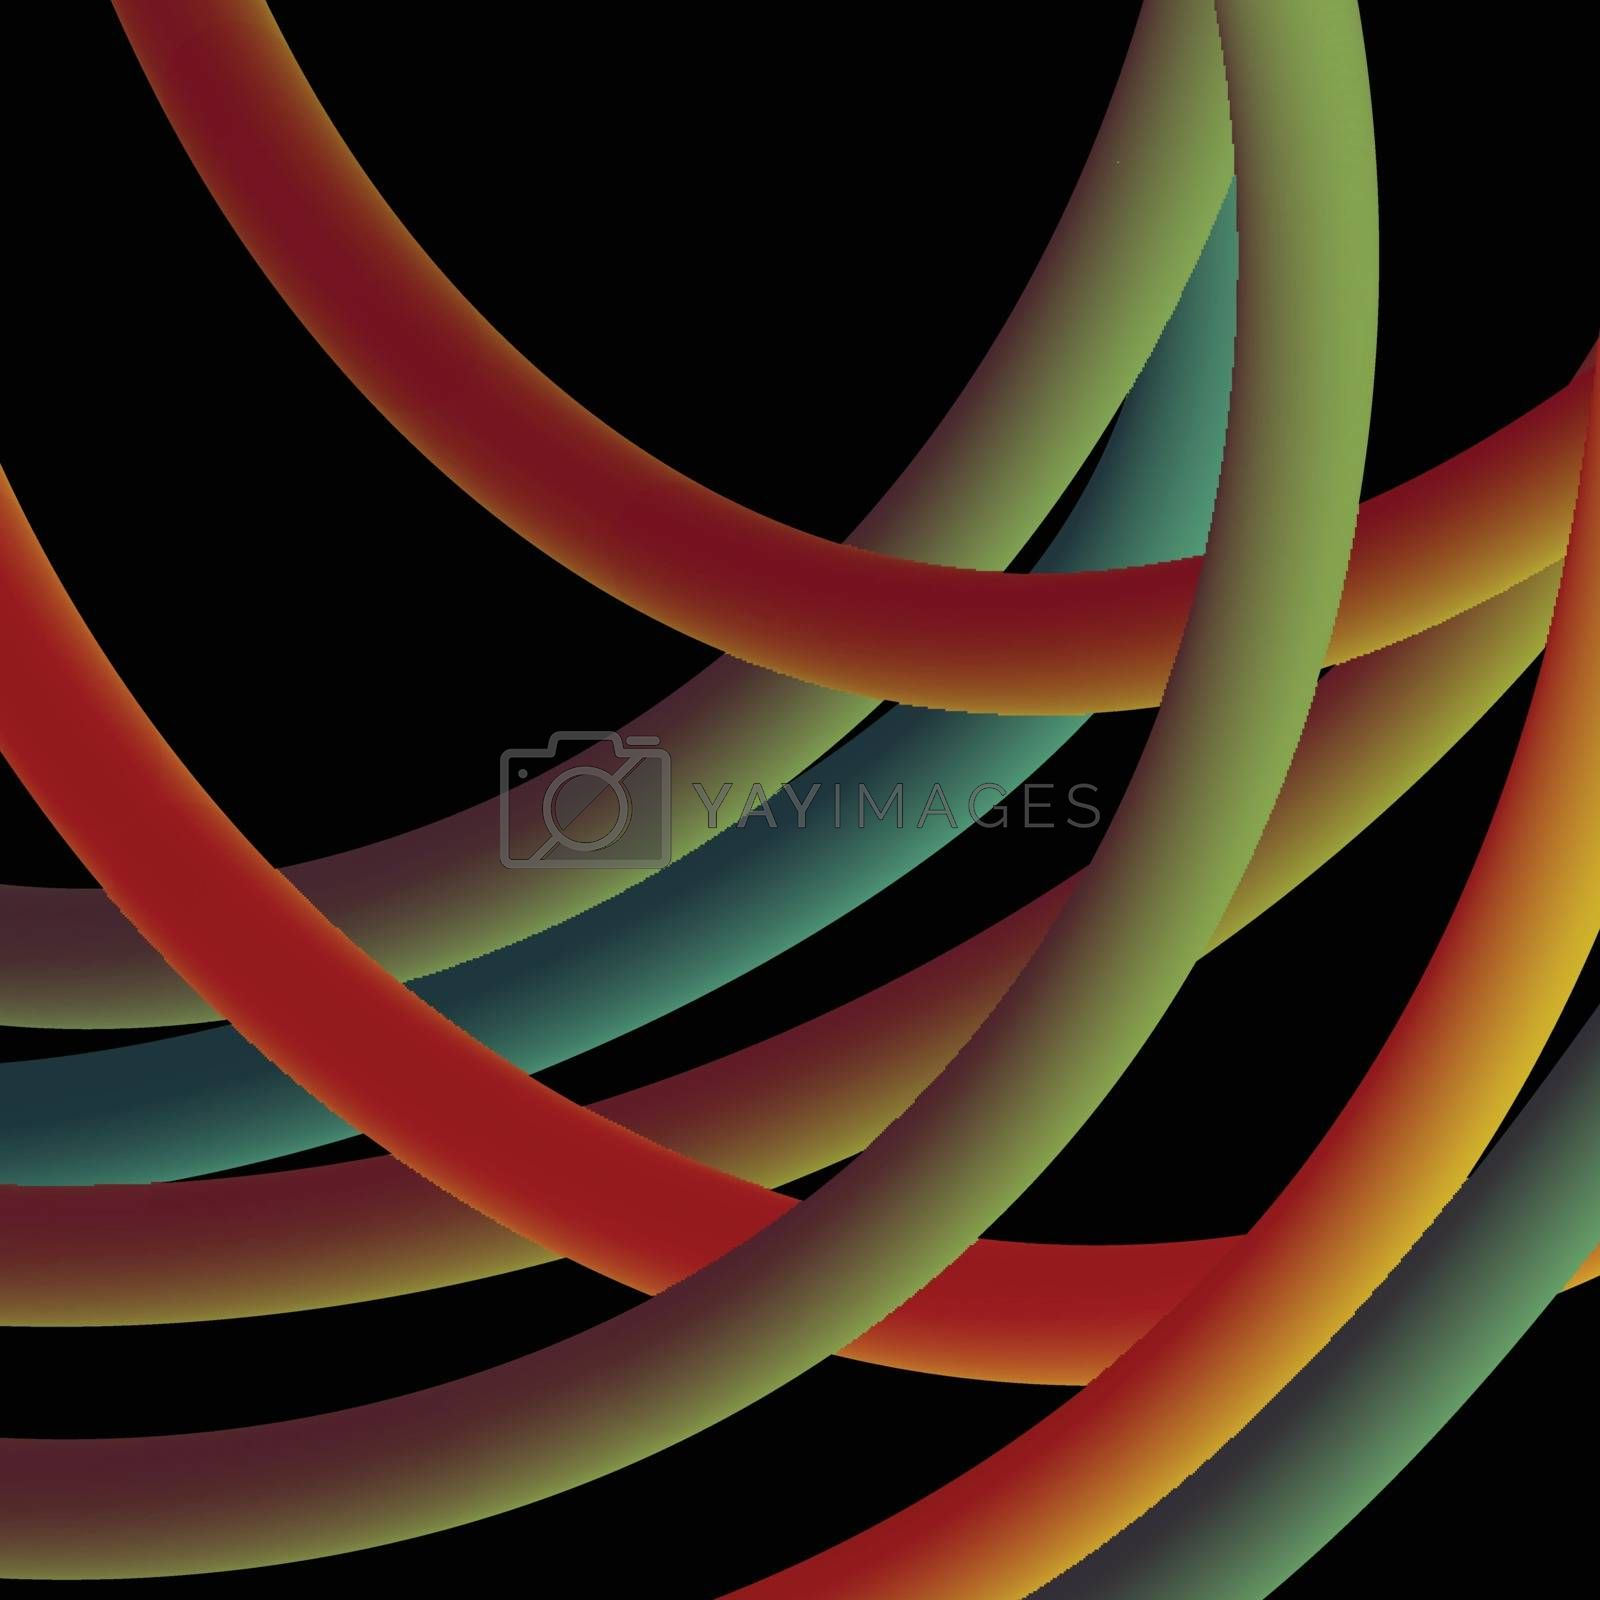 Twisted multicolored electrical wires on a black background. Vector illustration